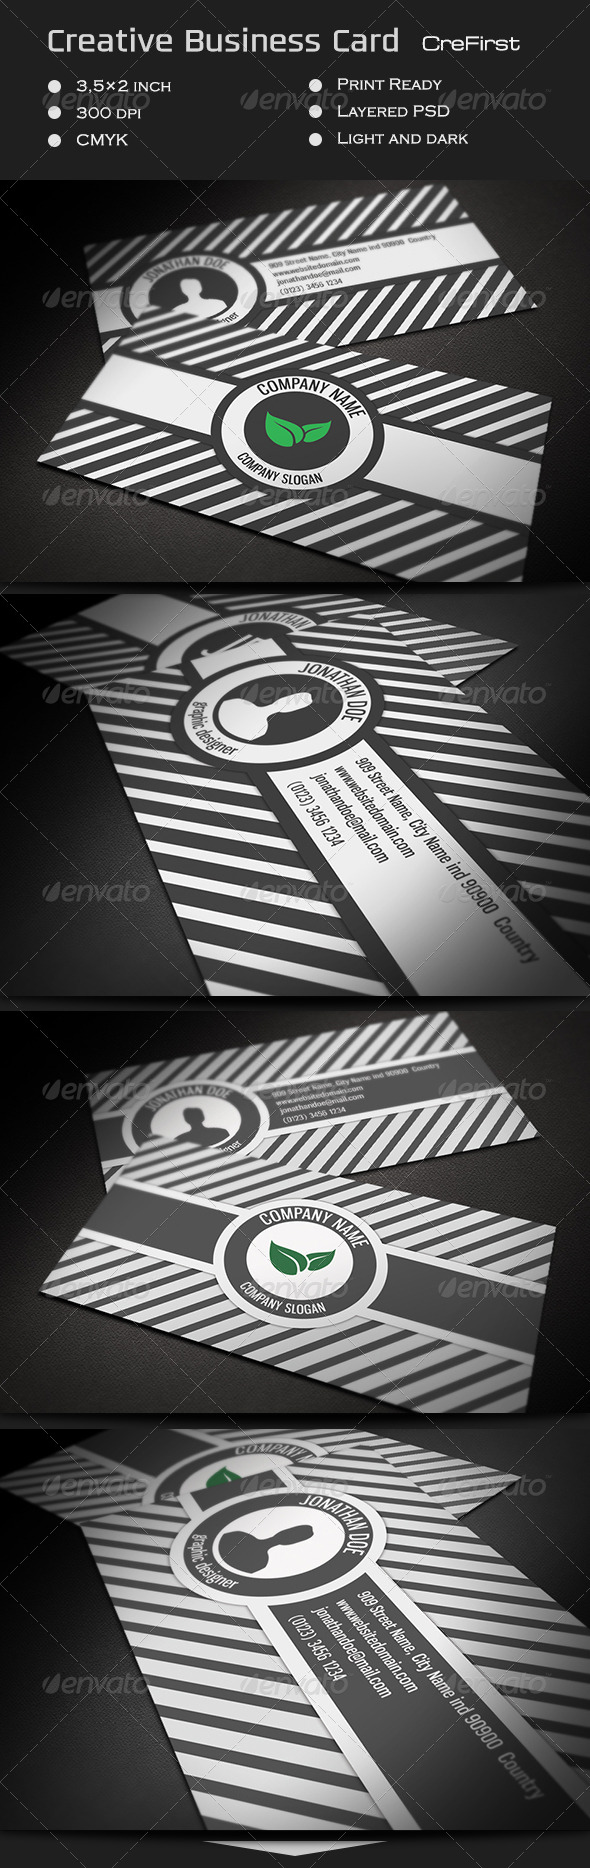 Creative Business Card CreFirst - Creative Business Cards